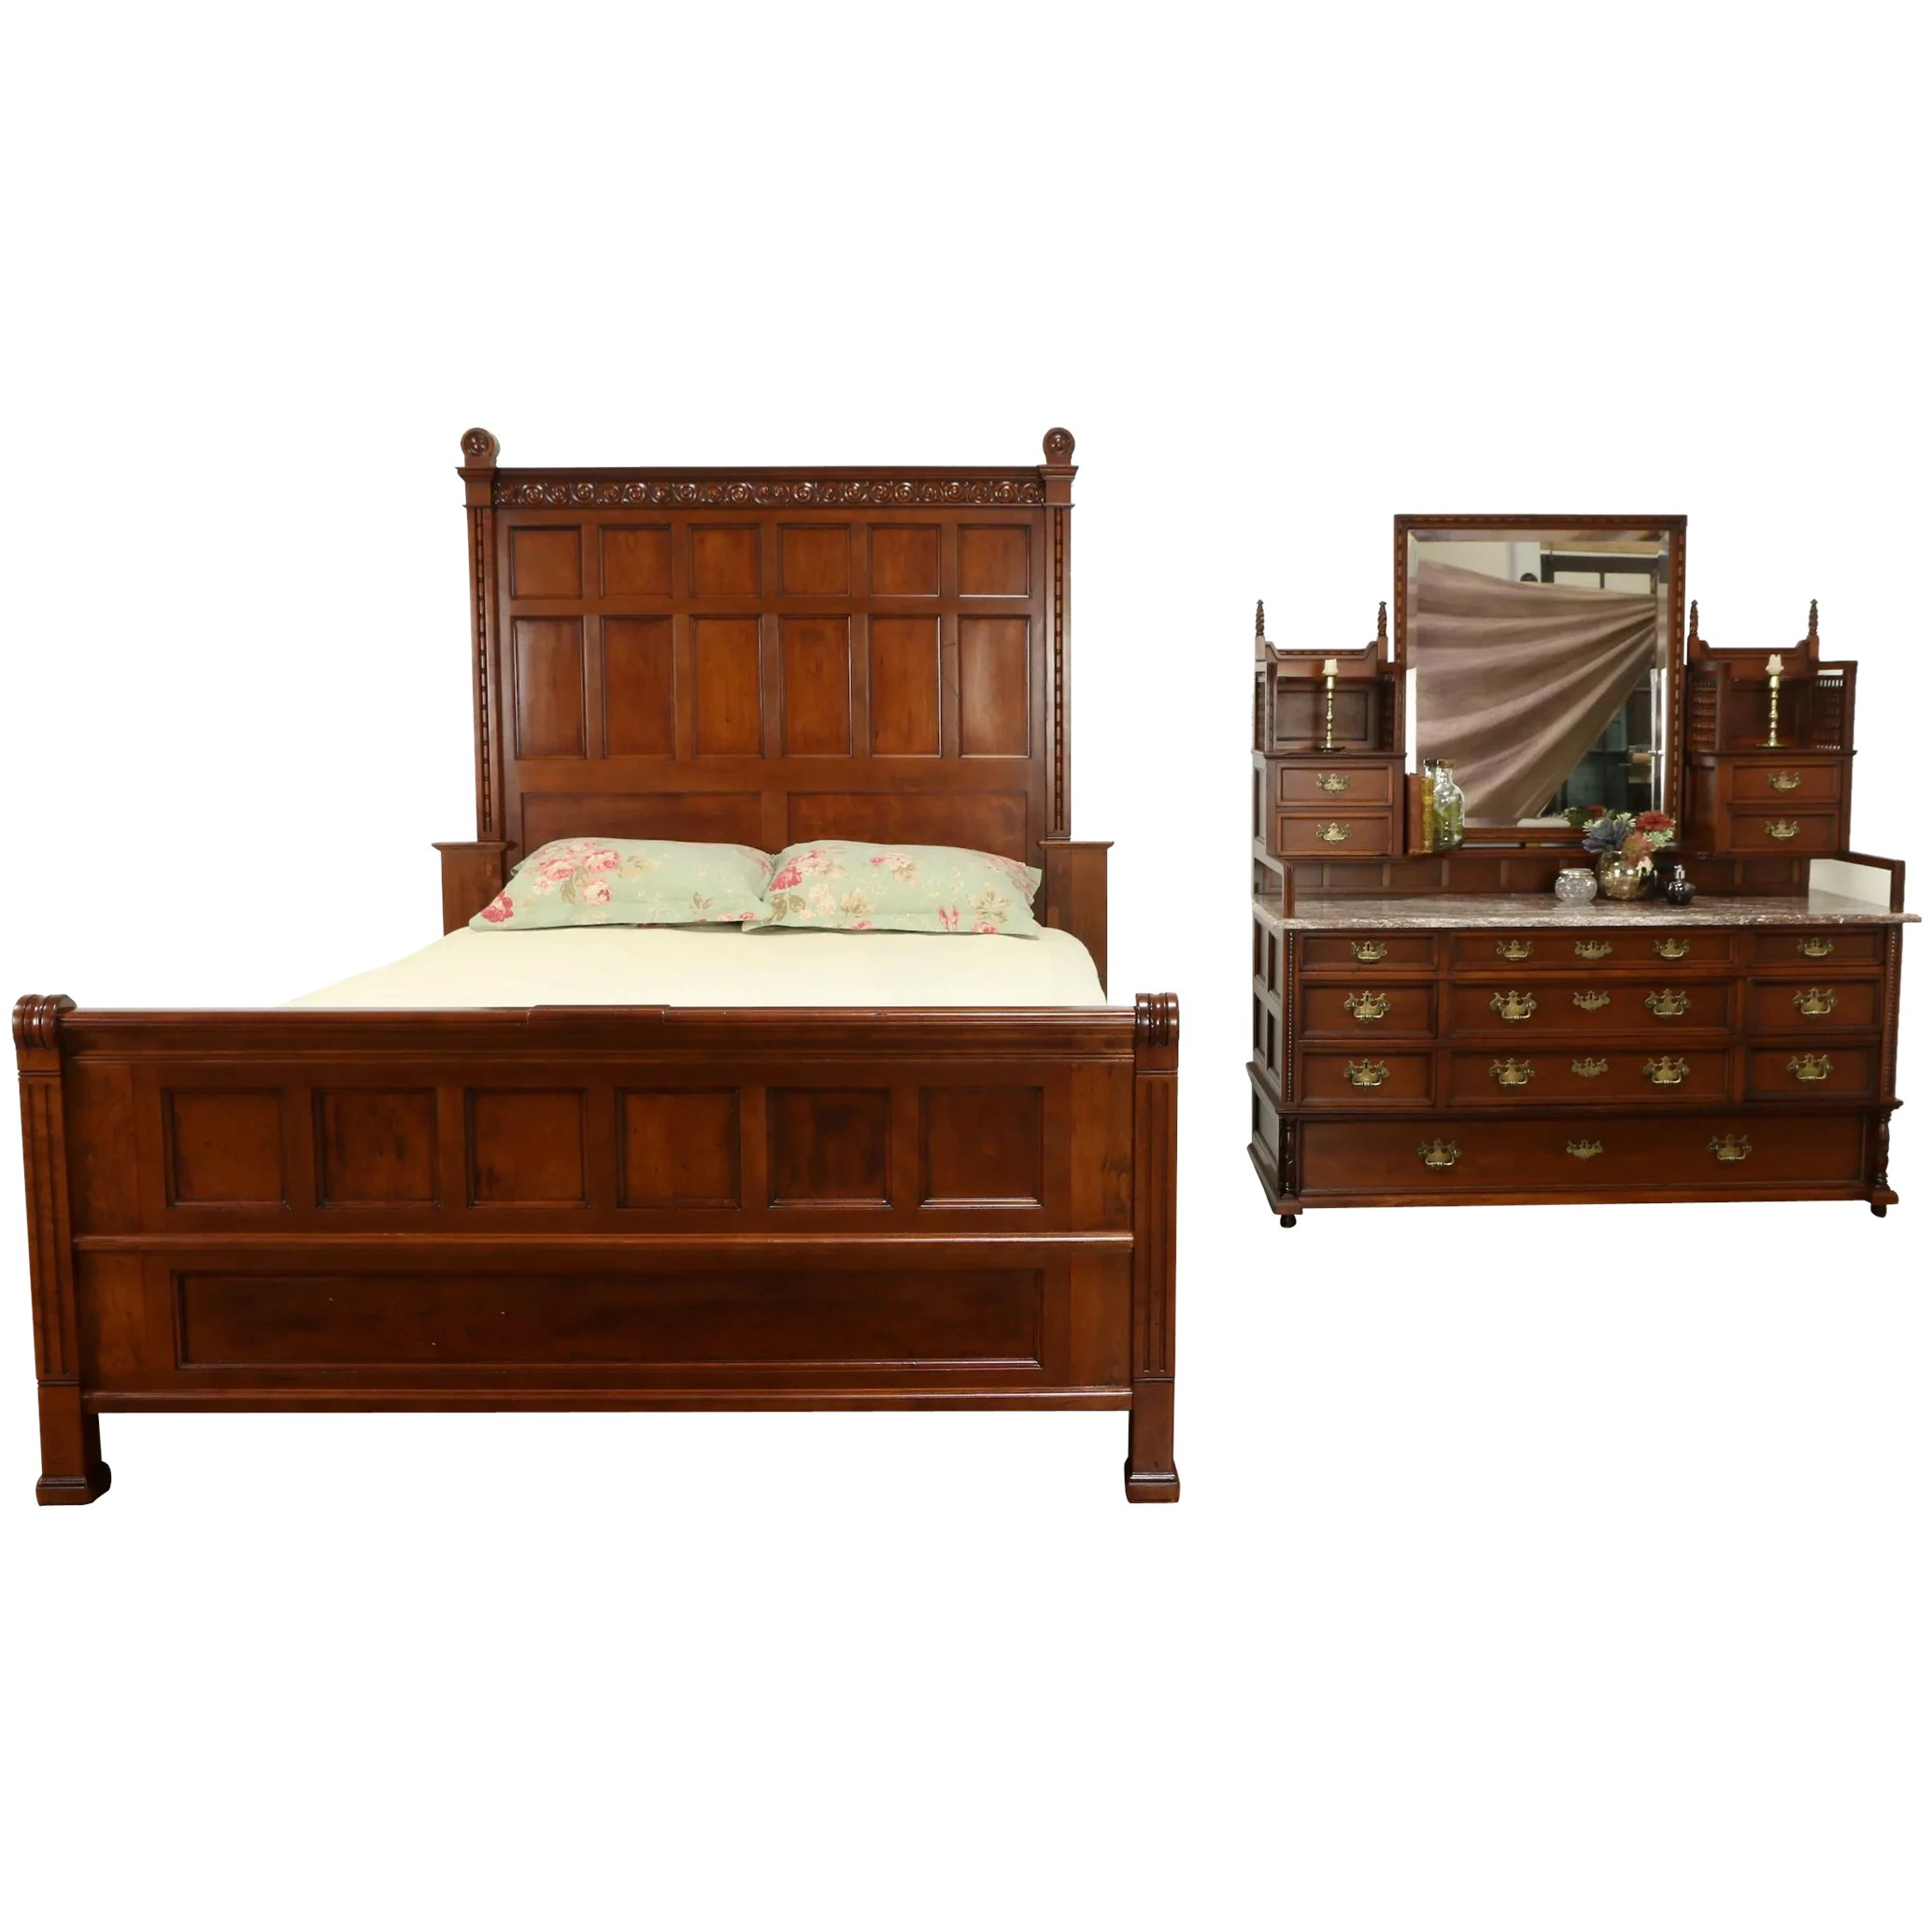 Carved Cherry Antique Bedroom Set Queen Size Bed Marble Top Dresser Harp Gallery Antique Furniture Ruby Lane